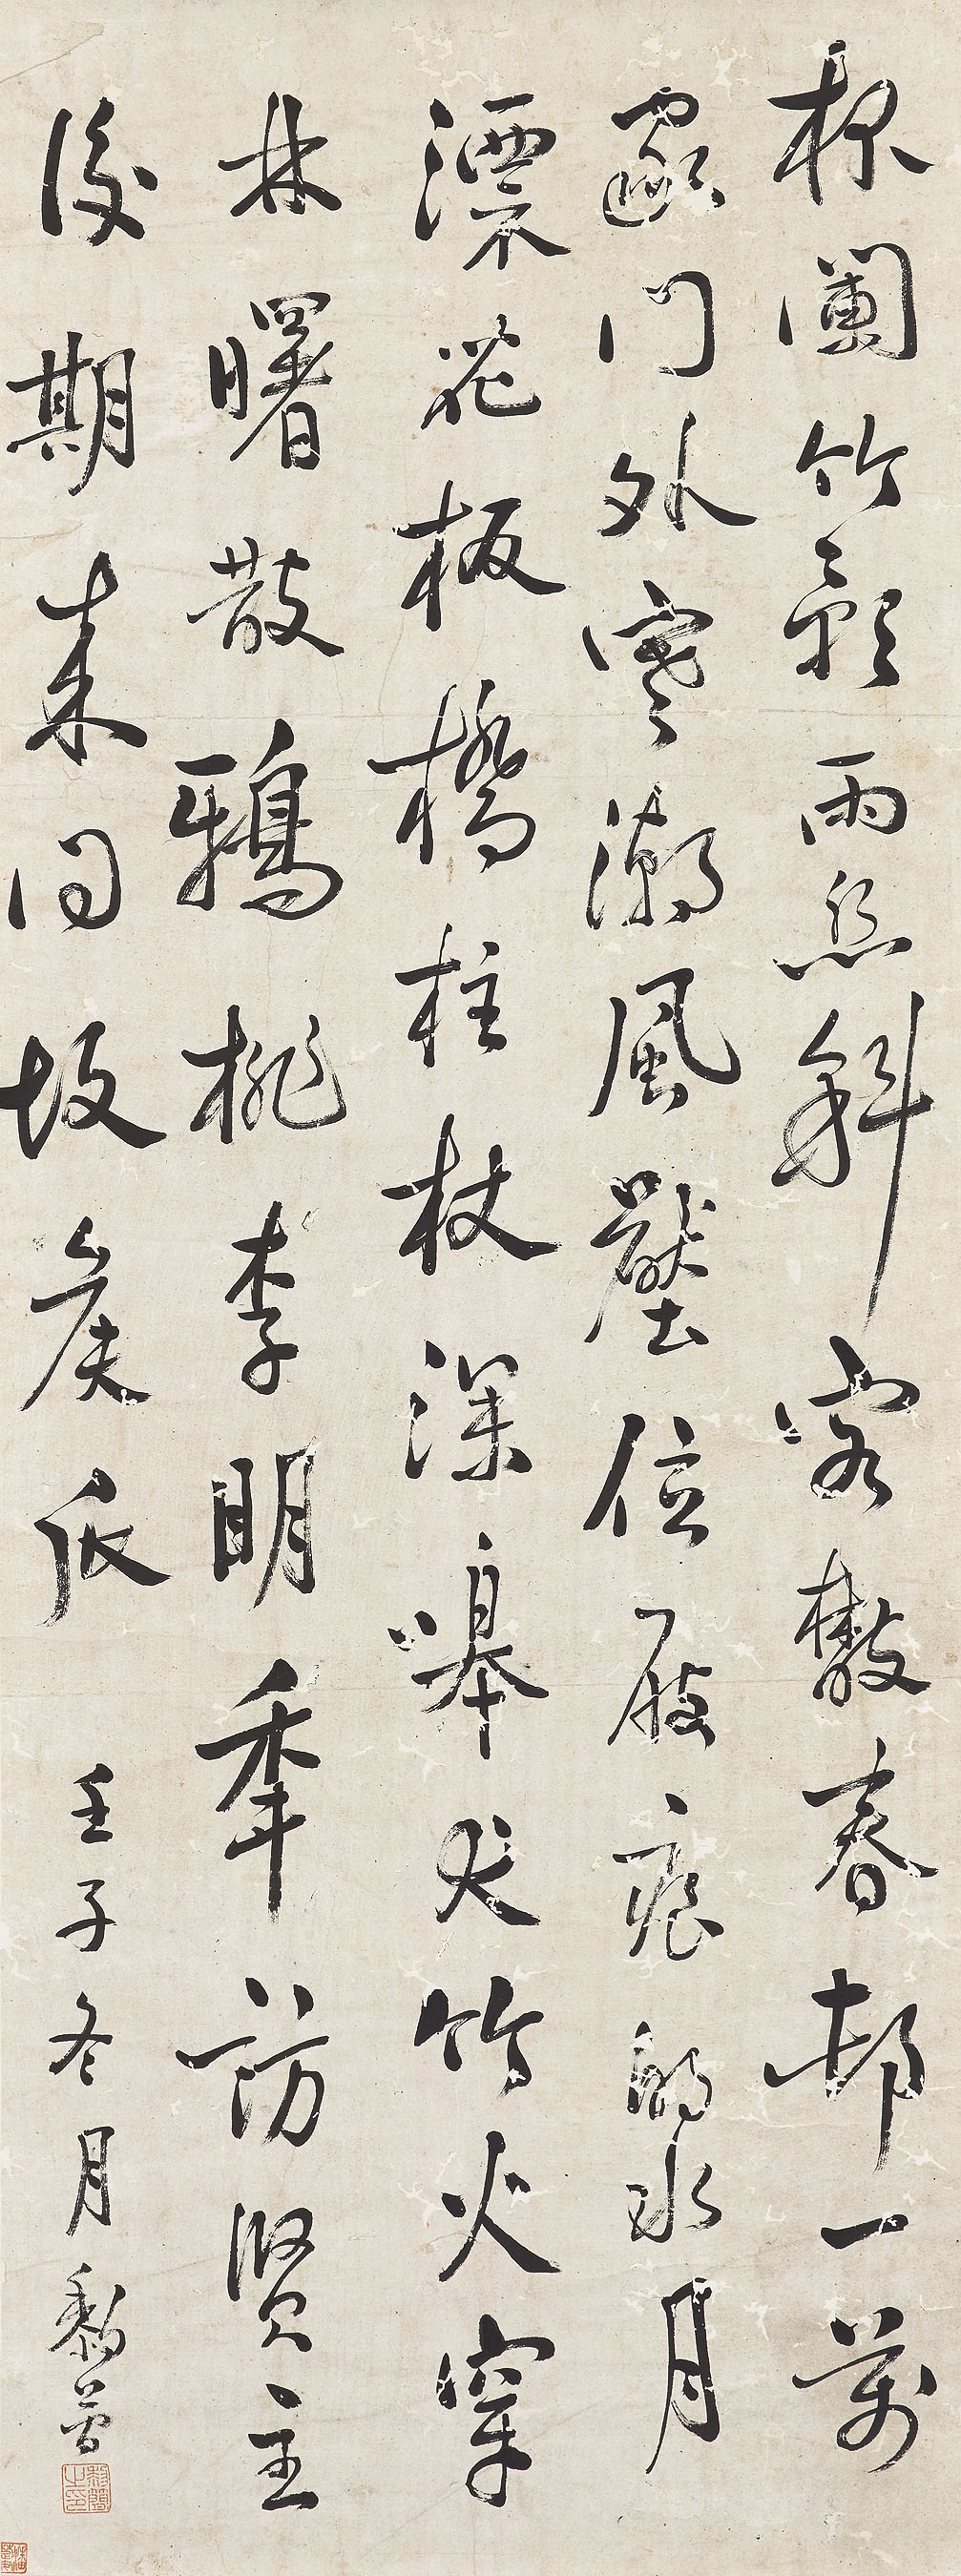 Seven-character Poems in Running Script Calligraphy